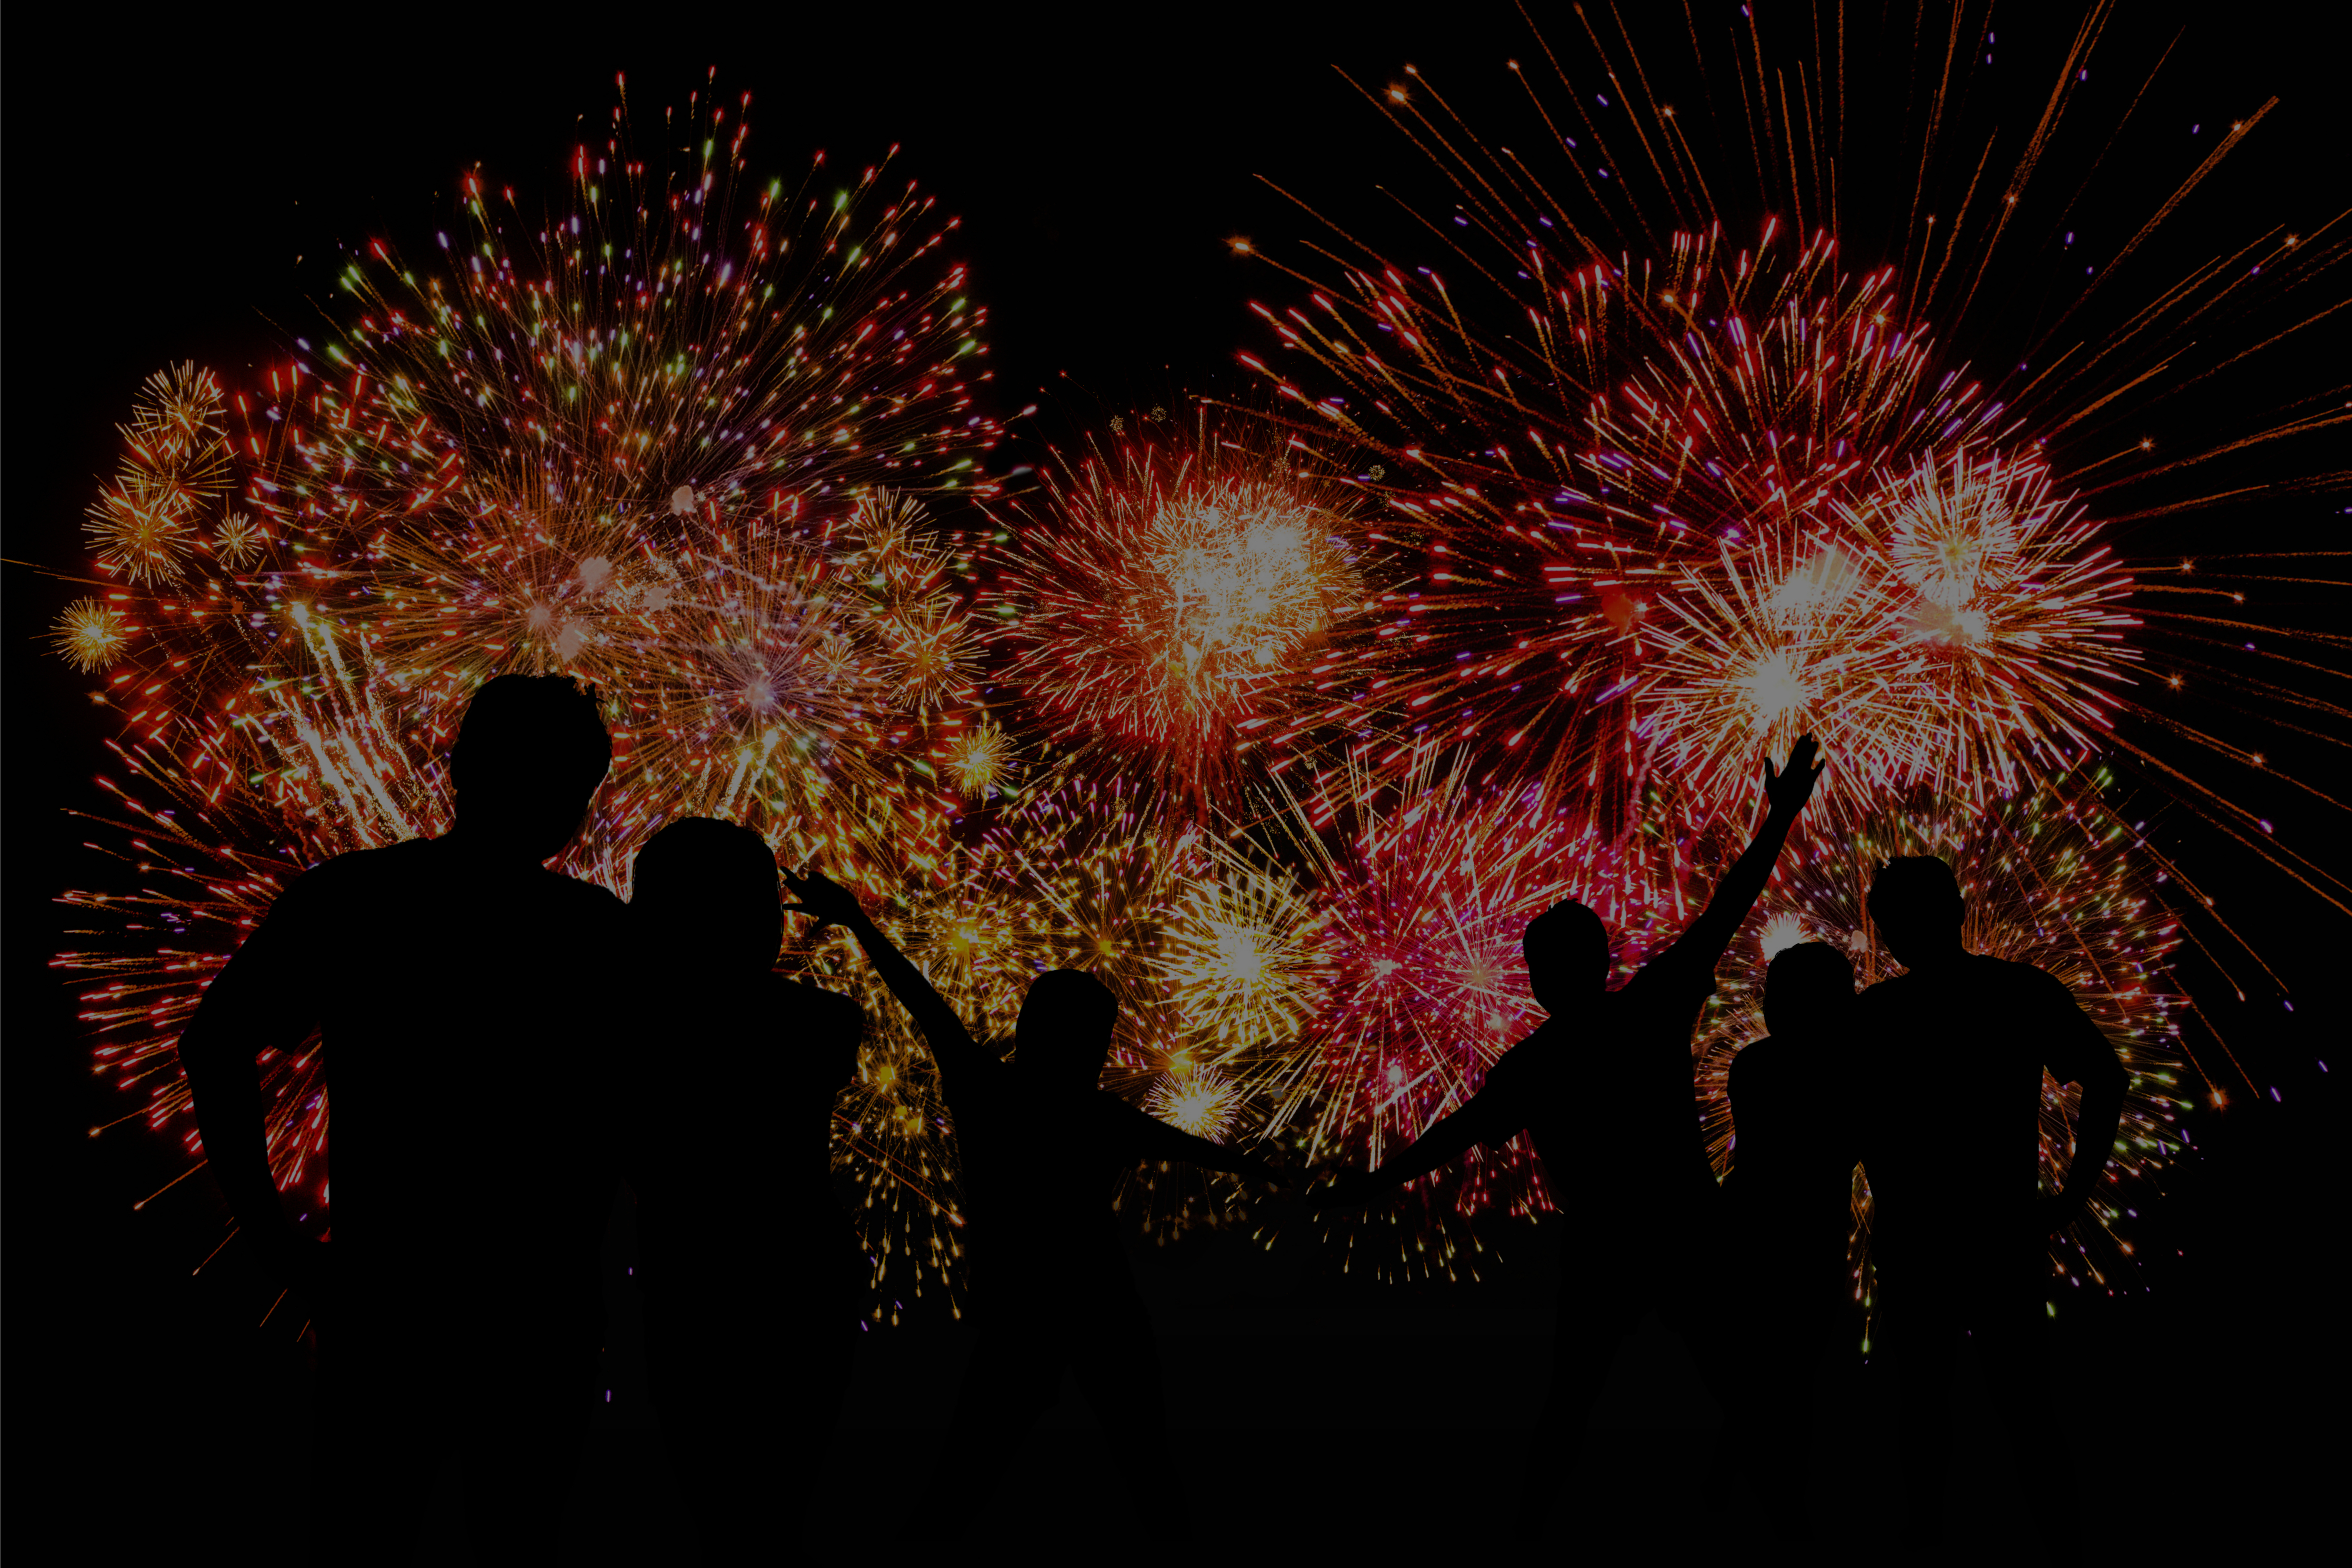 How To Reduce Risks Associated With Fireworks